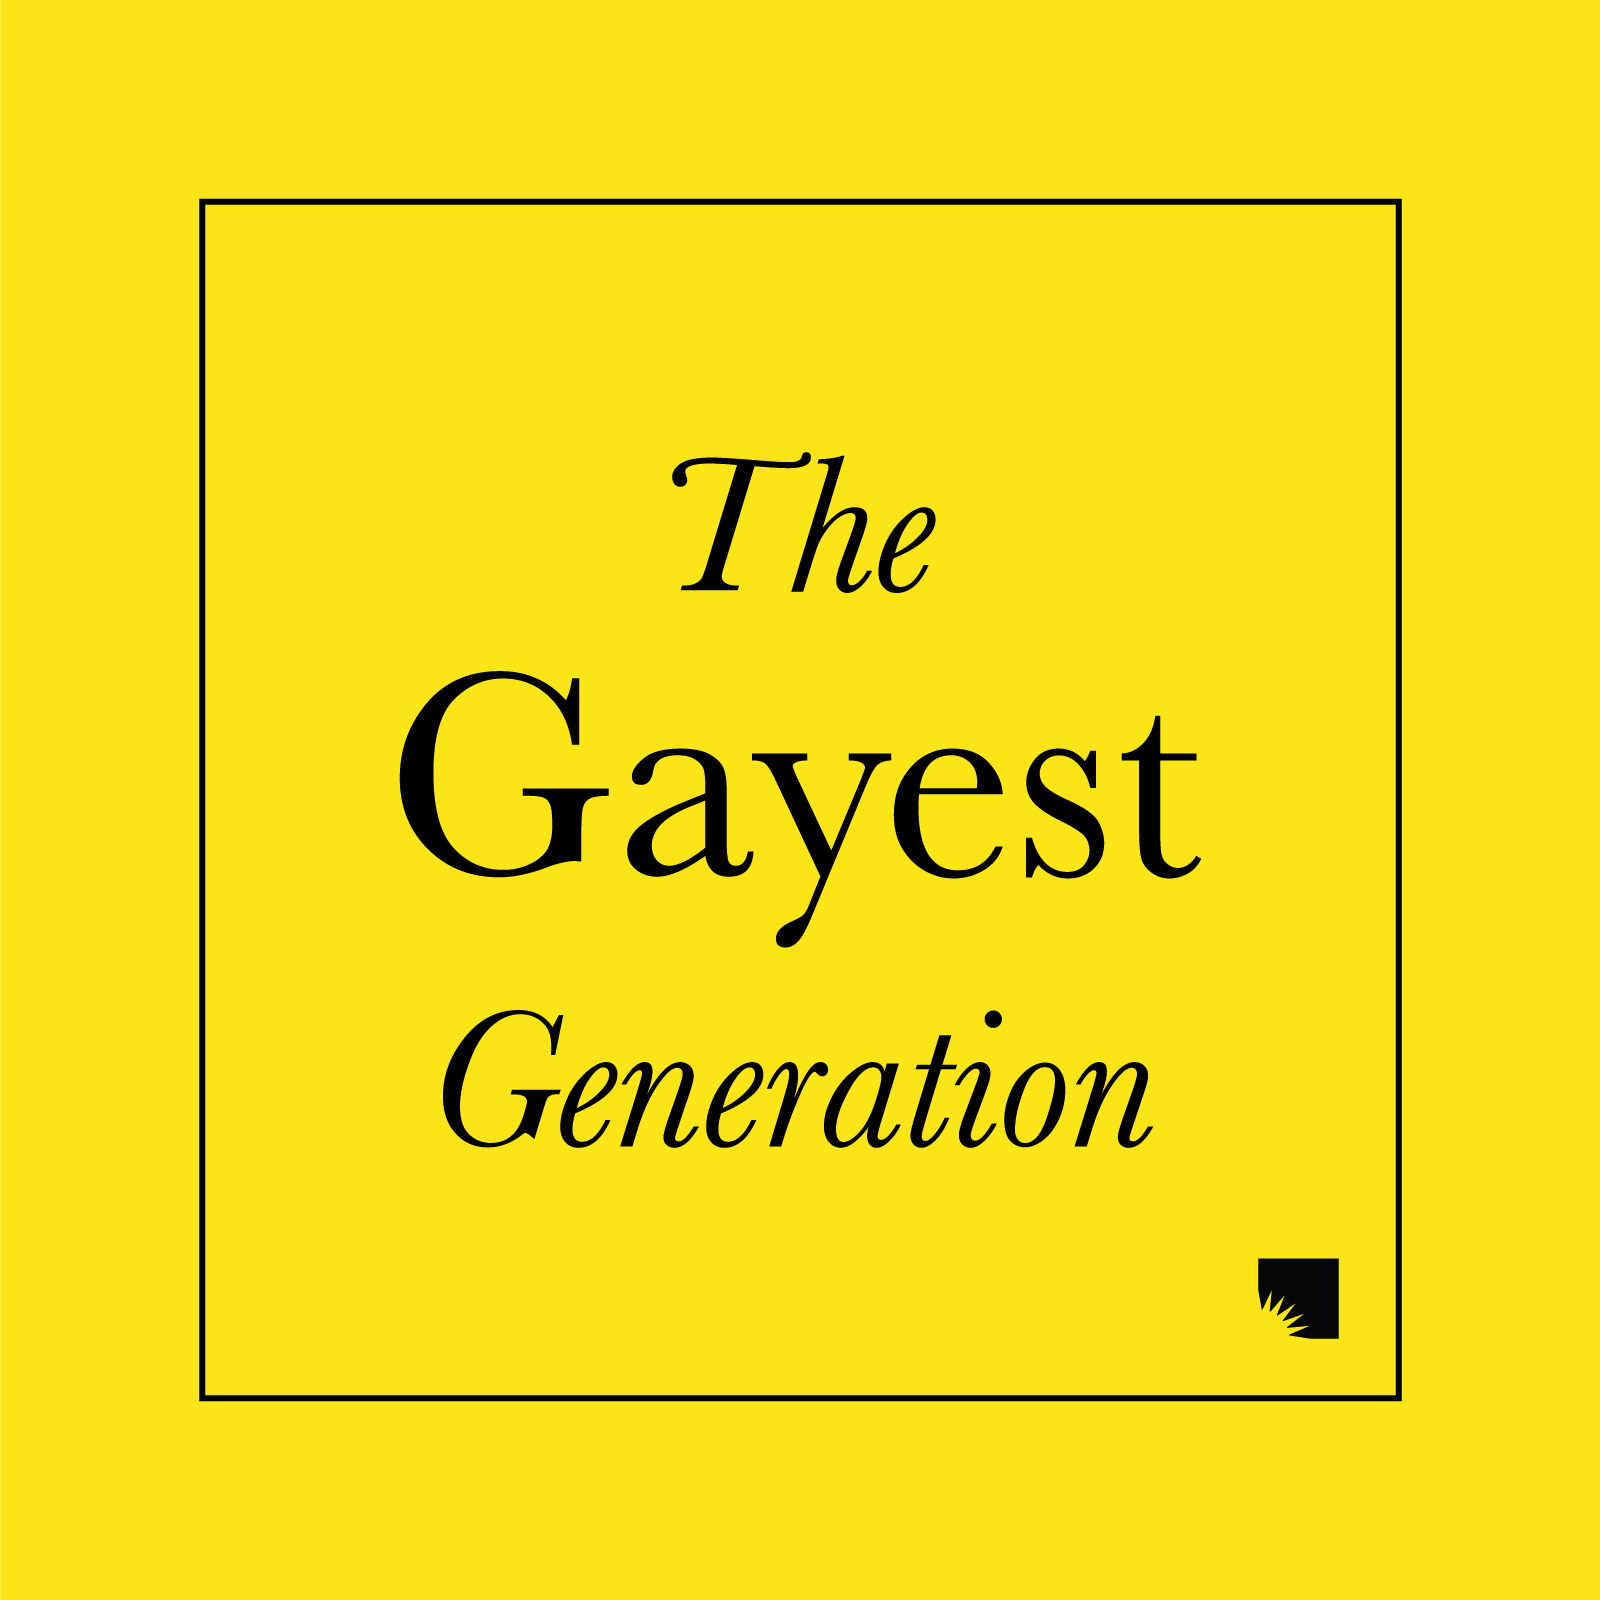 Promotional image for The Gayest Generation Ep. 2 - Randy Hasso podcast